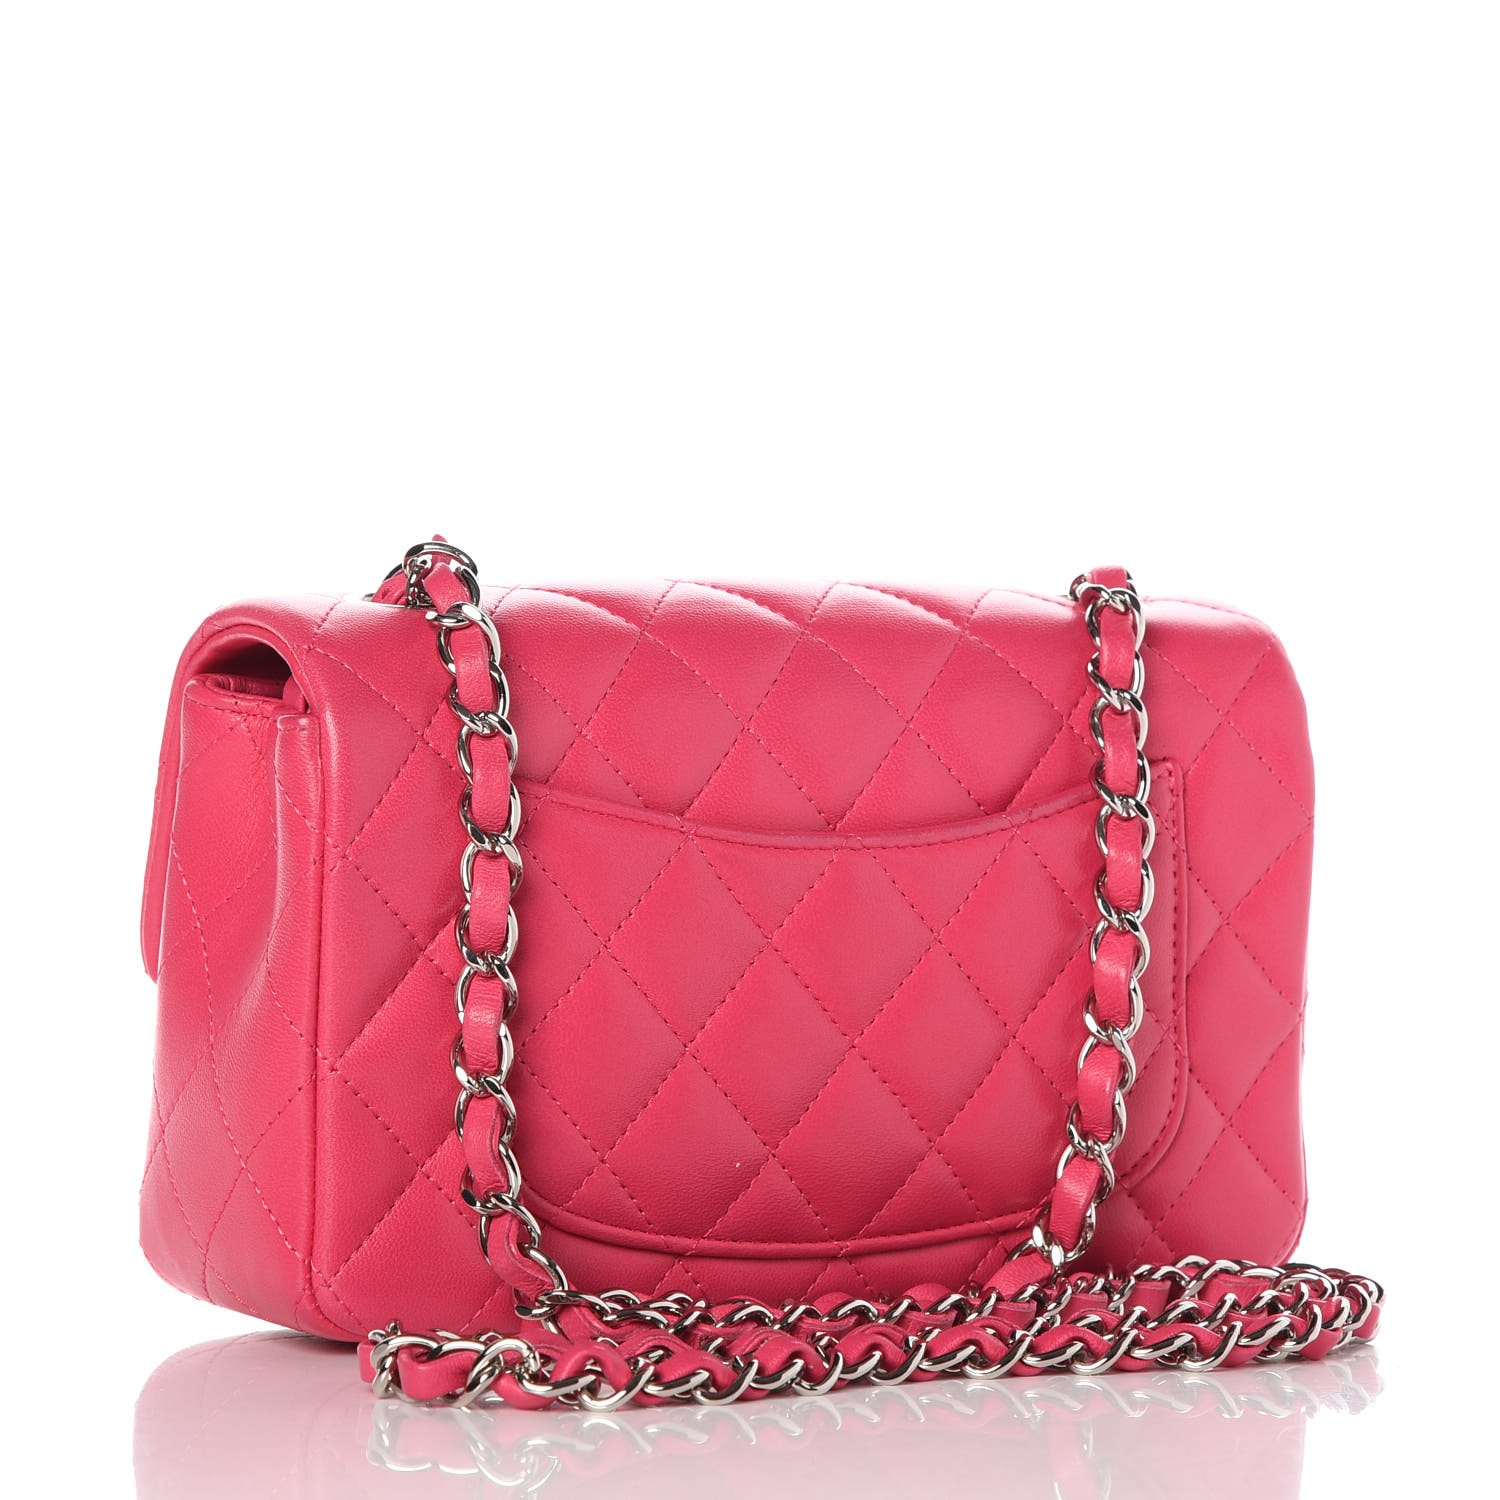 581c4fcb8cc5 CHANEL Lambskin Quilted Mini Rectangular Flap Dark Pink 272879